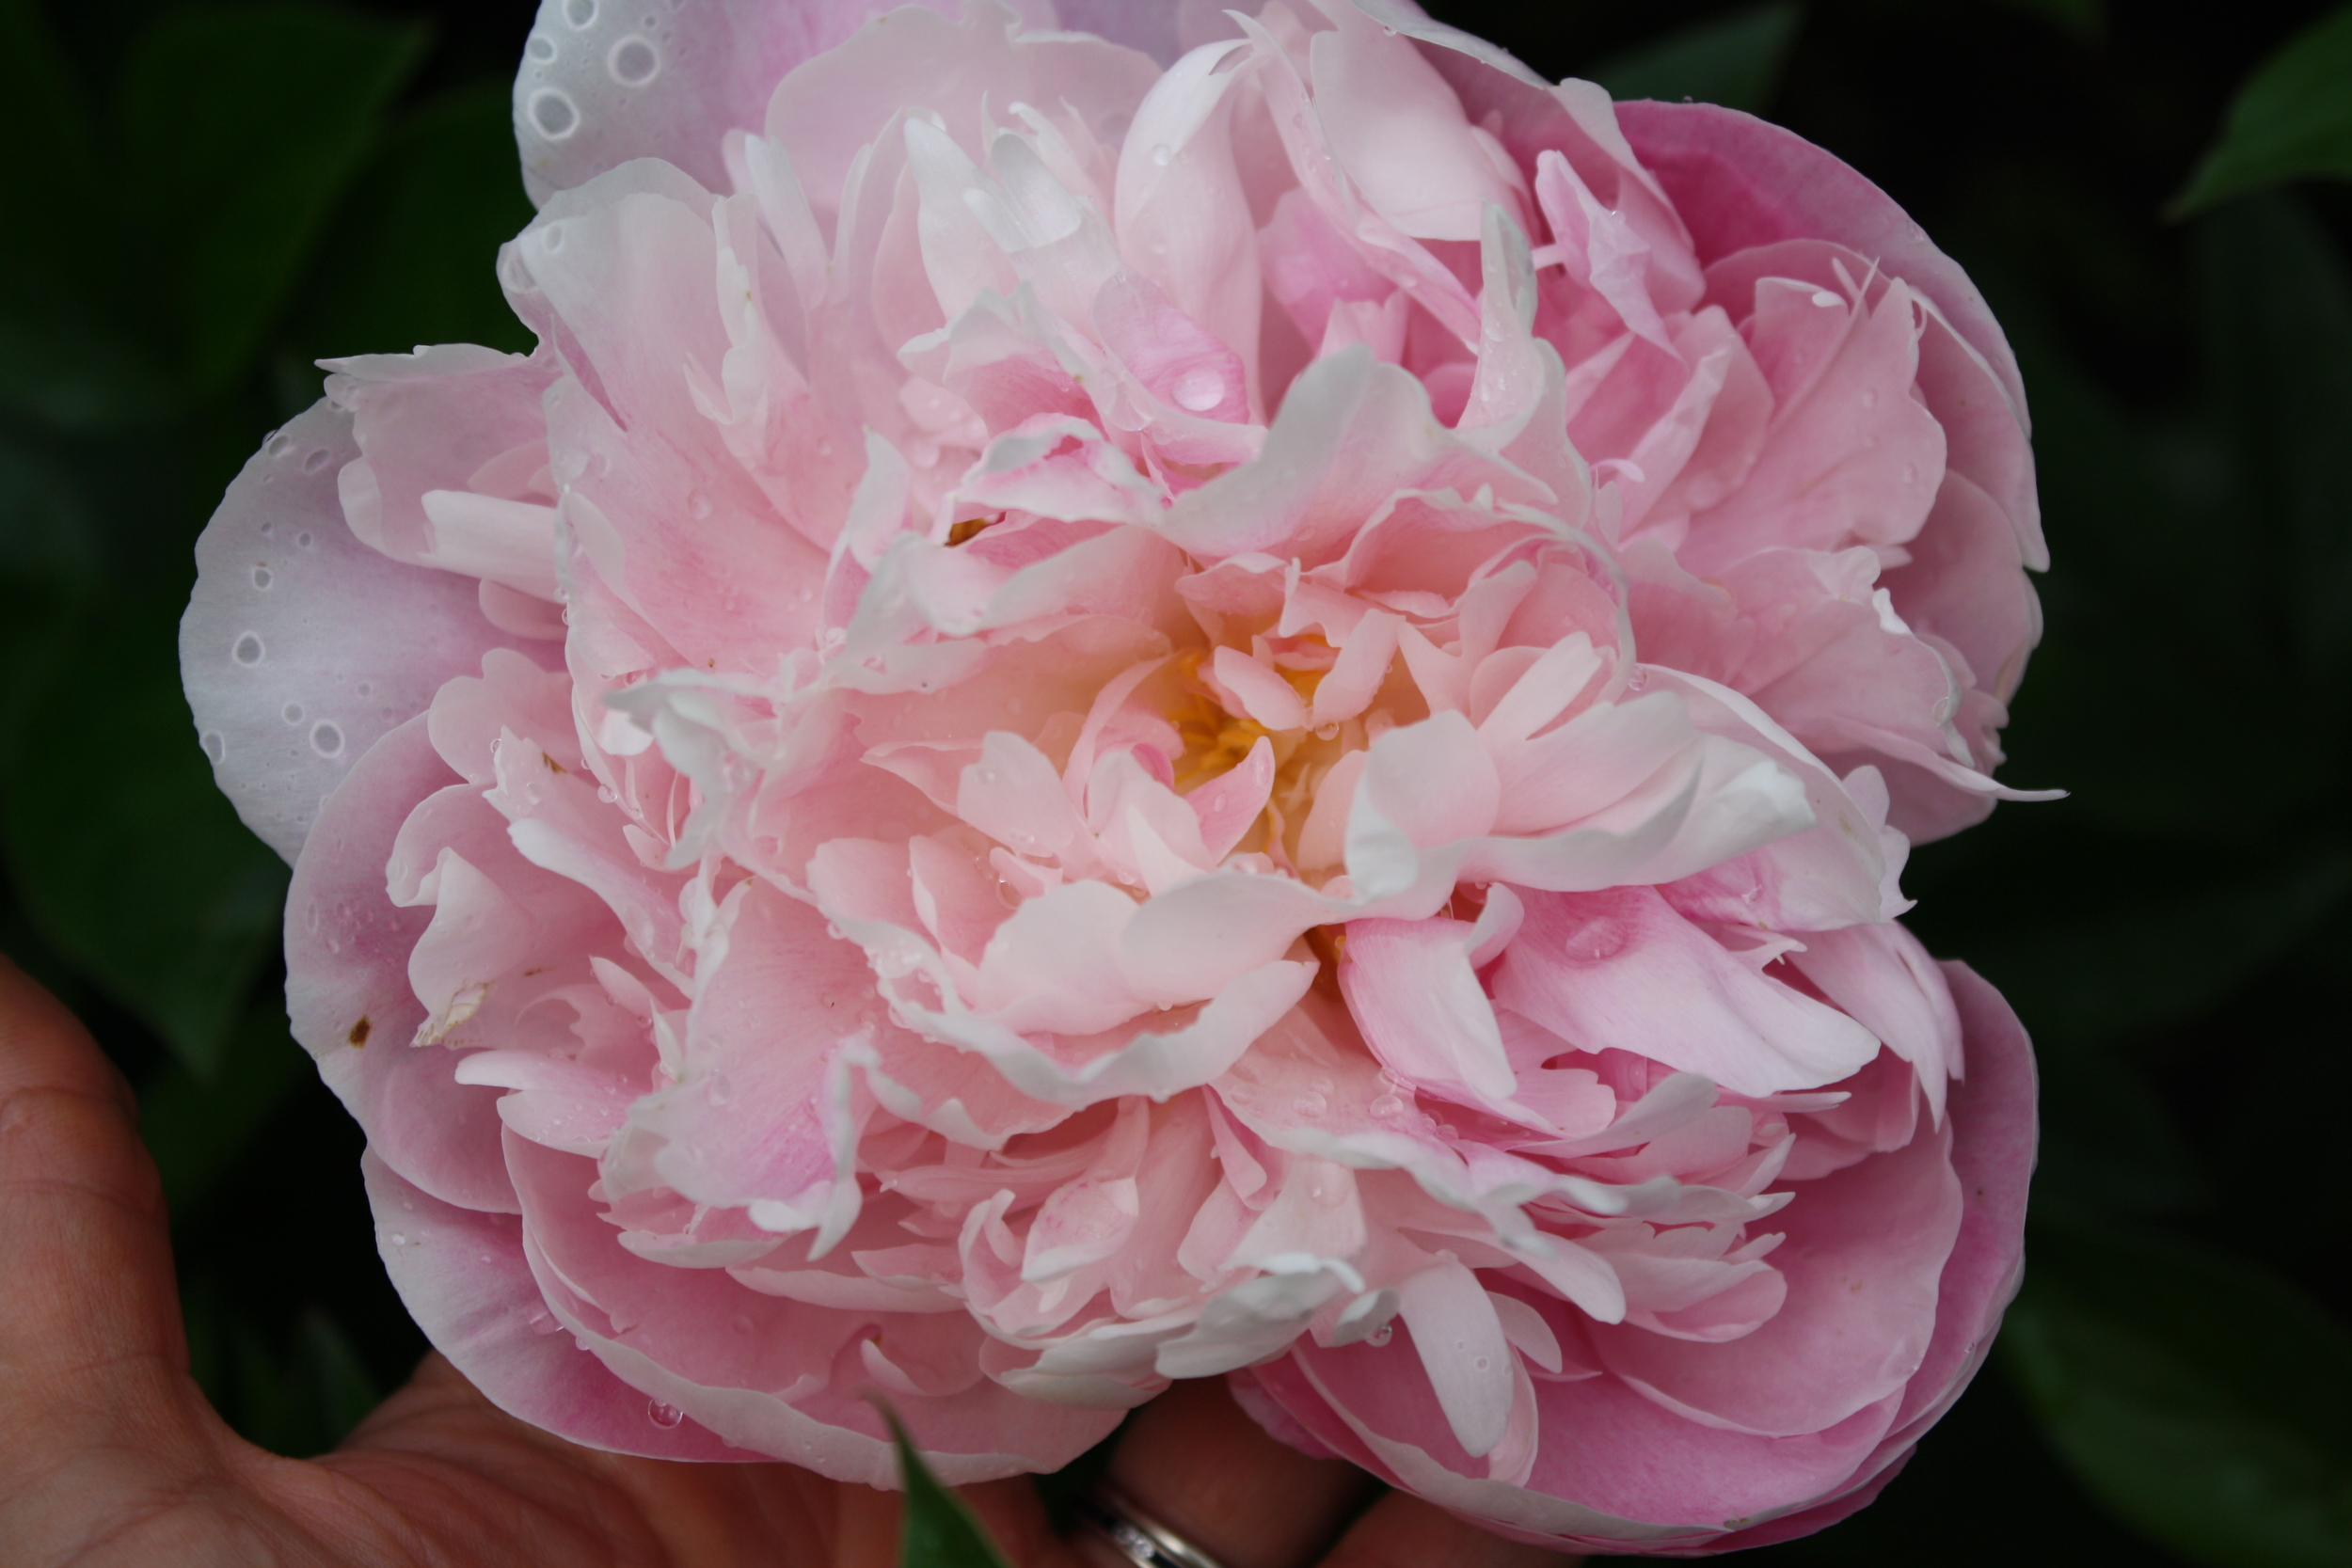 Another gorgeous peony